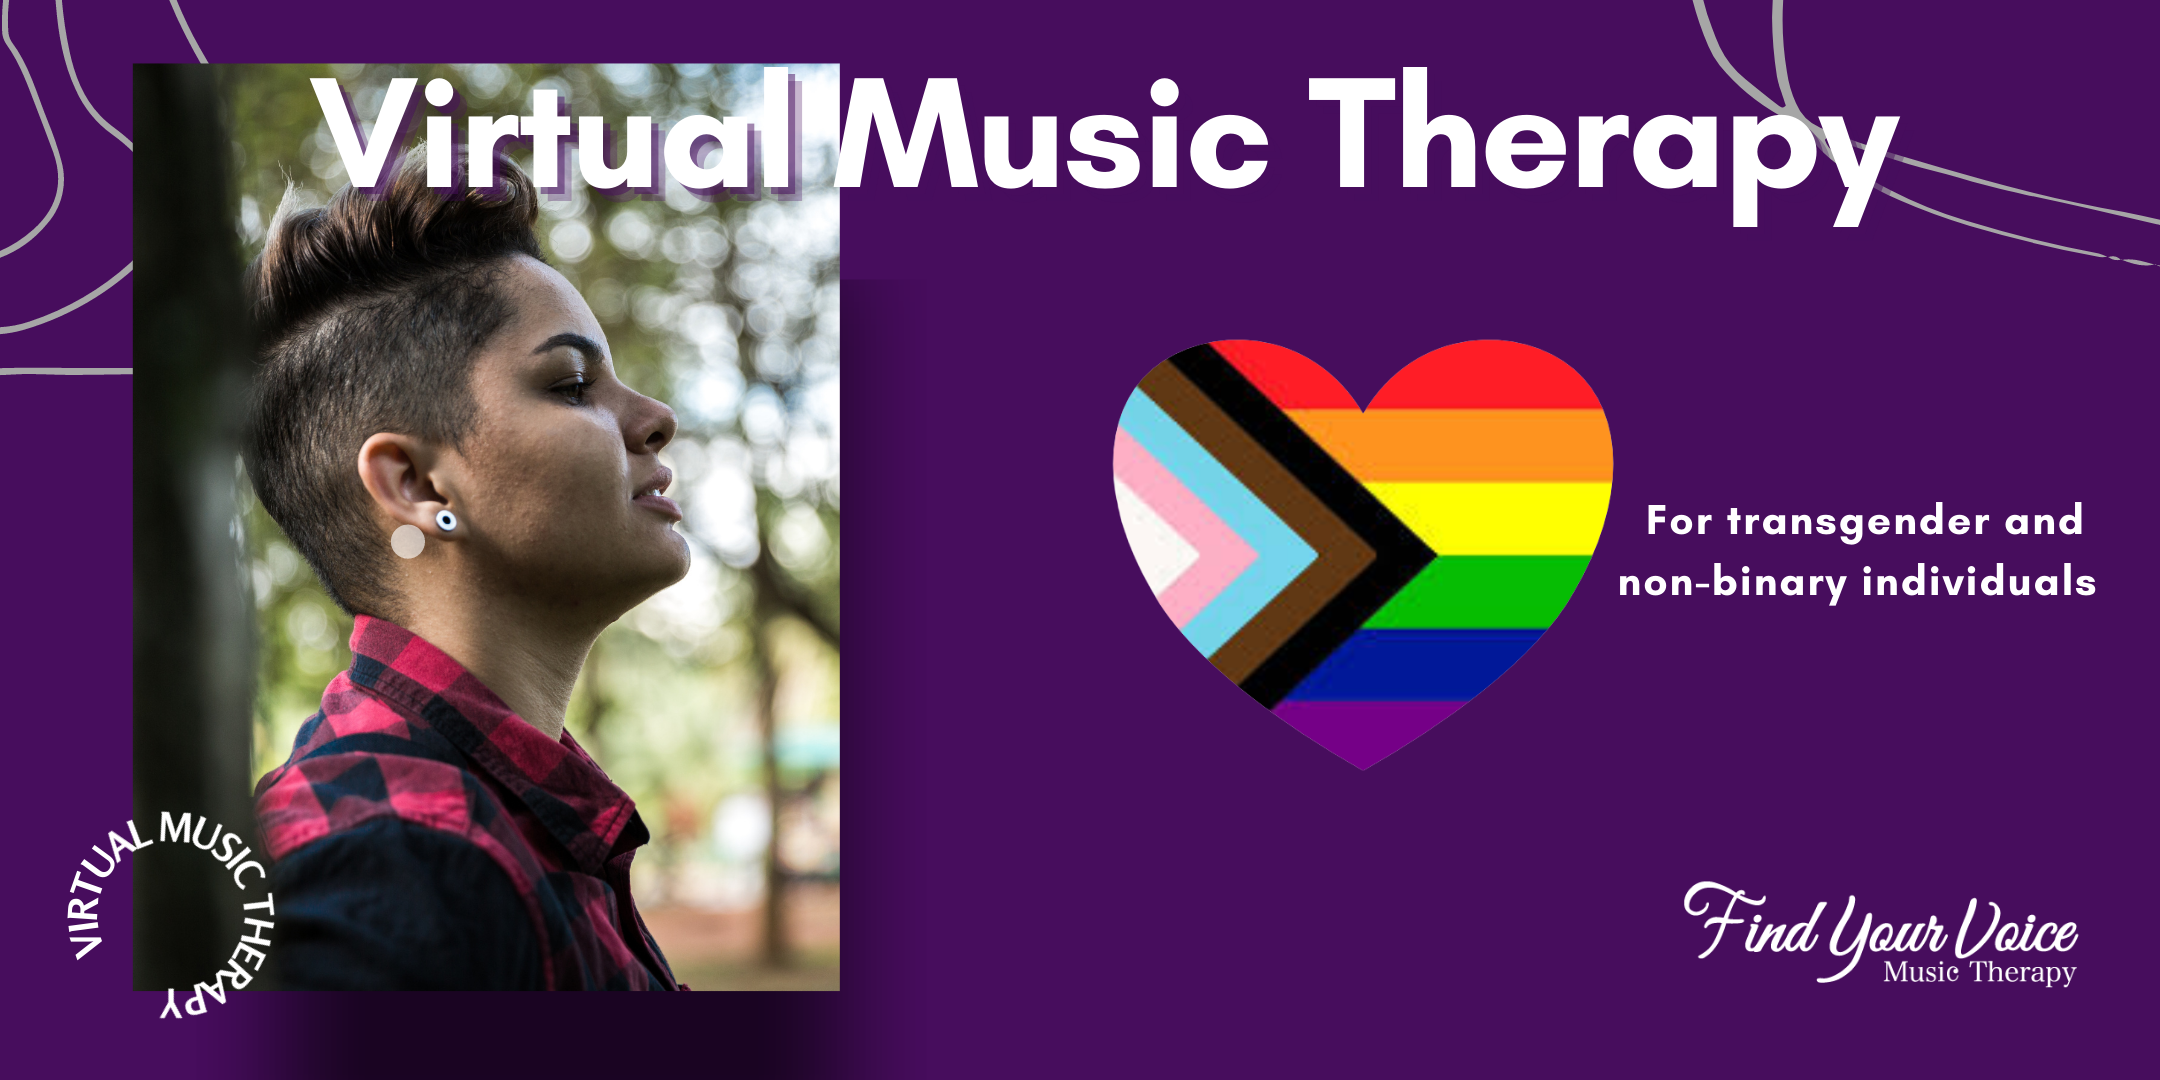 Music Therapy. Nova Scotia. Halifax. Transgender. Non-Binary. Trans. Voices. Transitioning. Therapy.